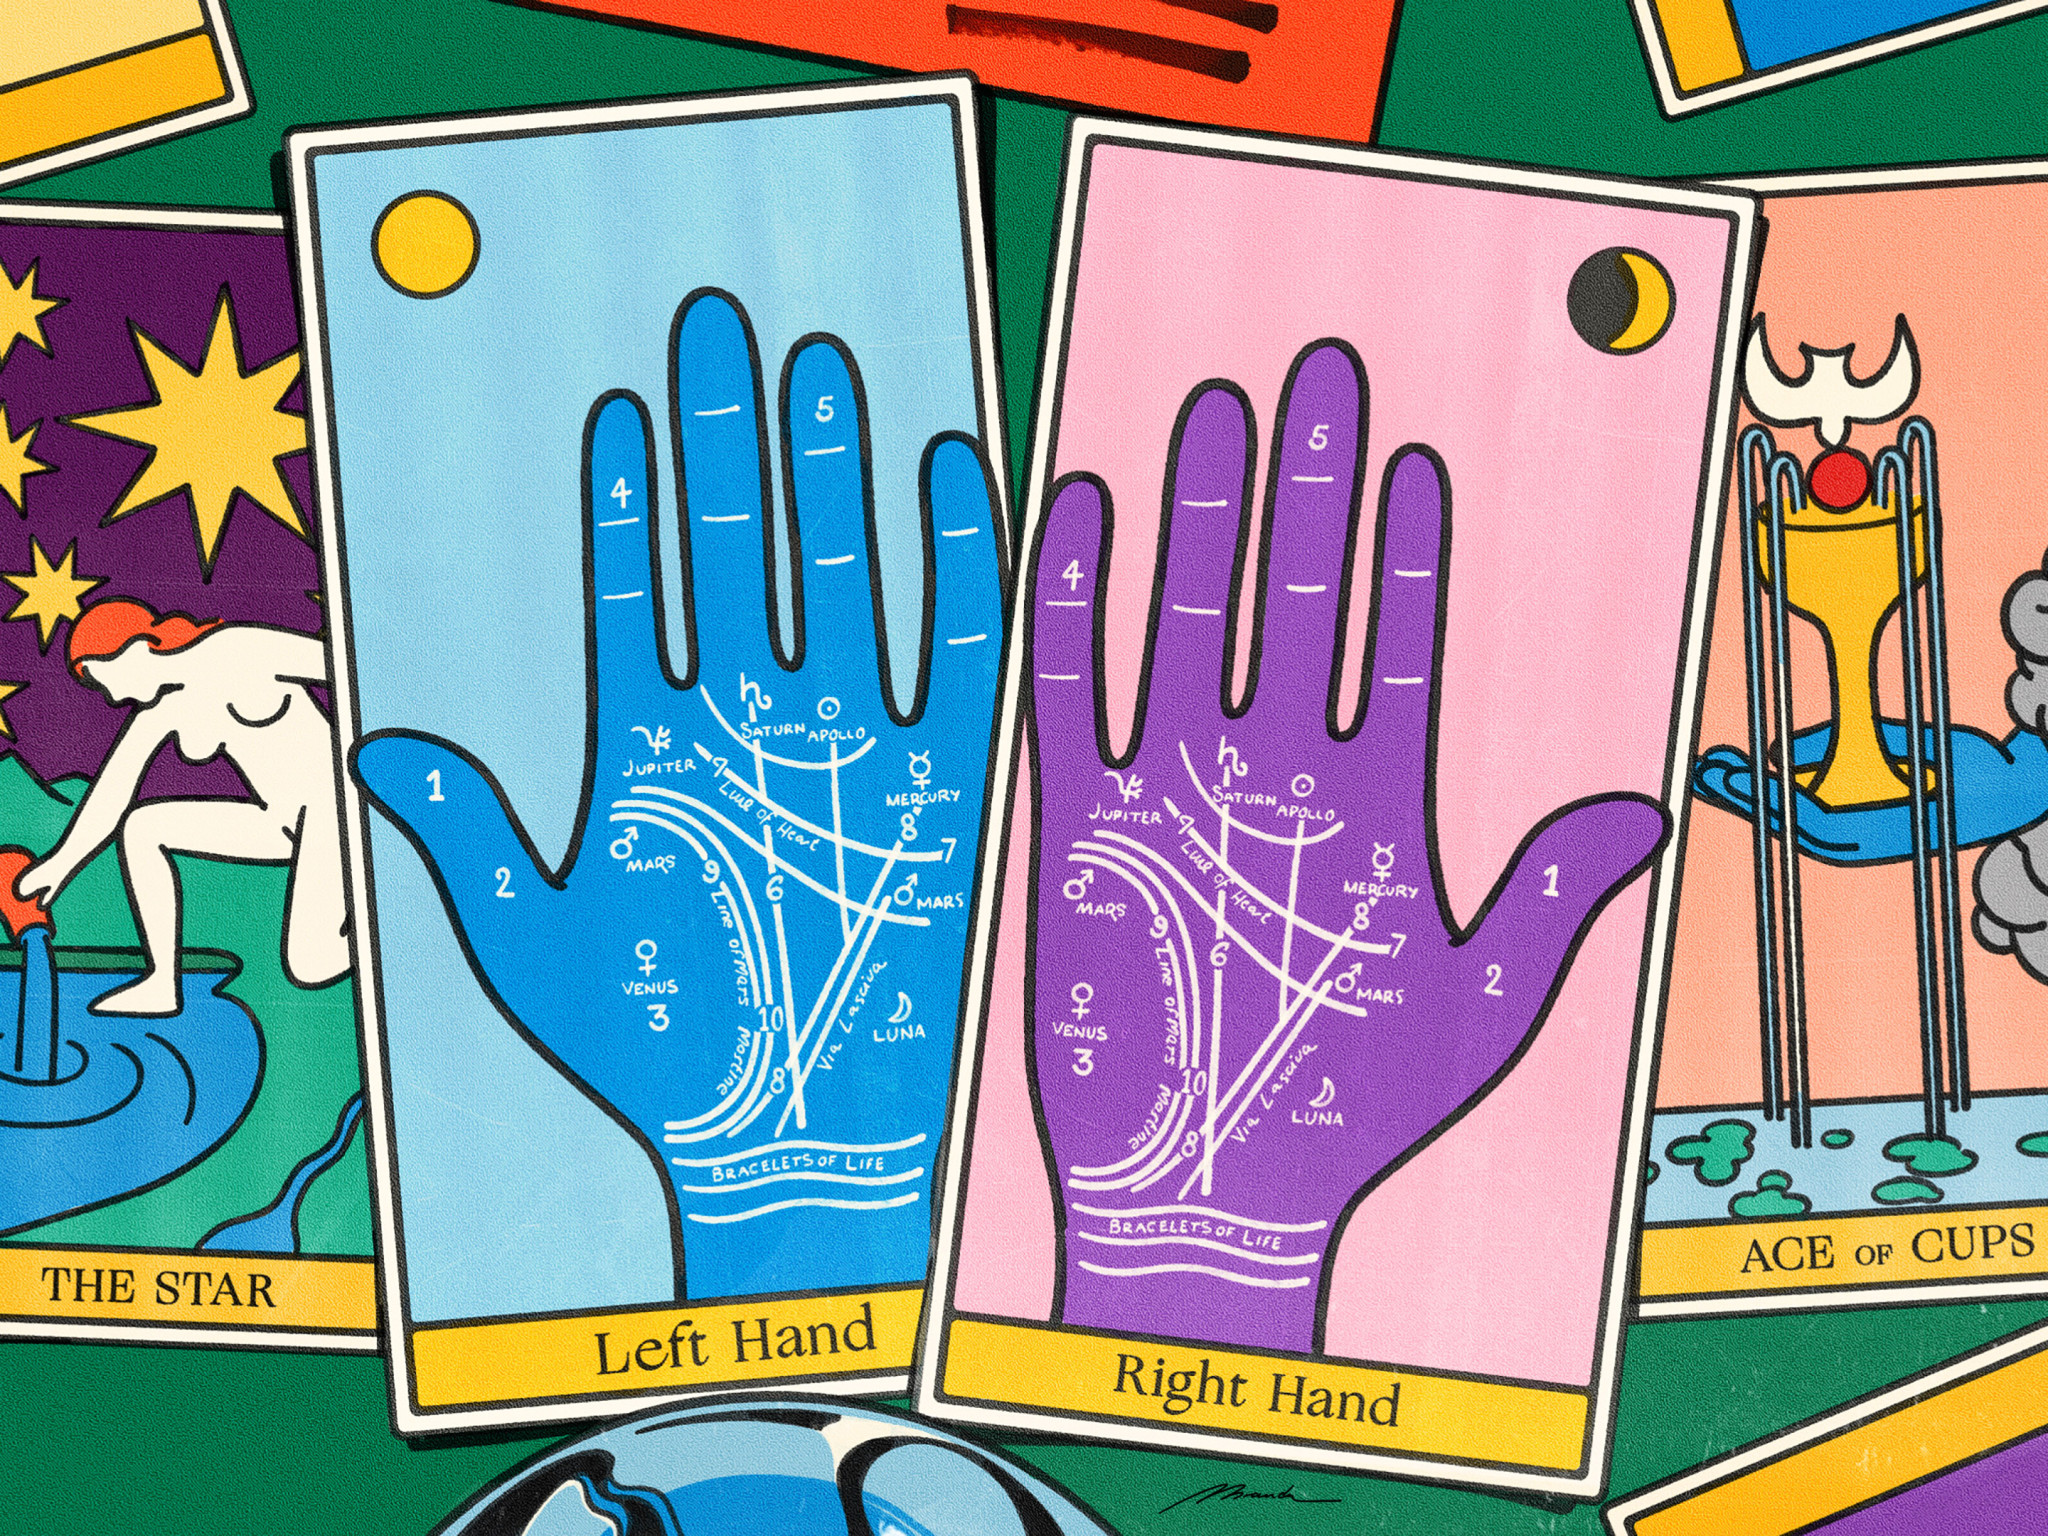 A colourful illustration of tarot cards with hands on them.